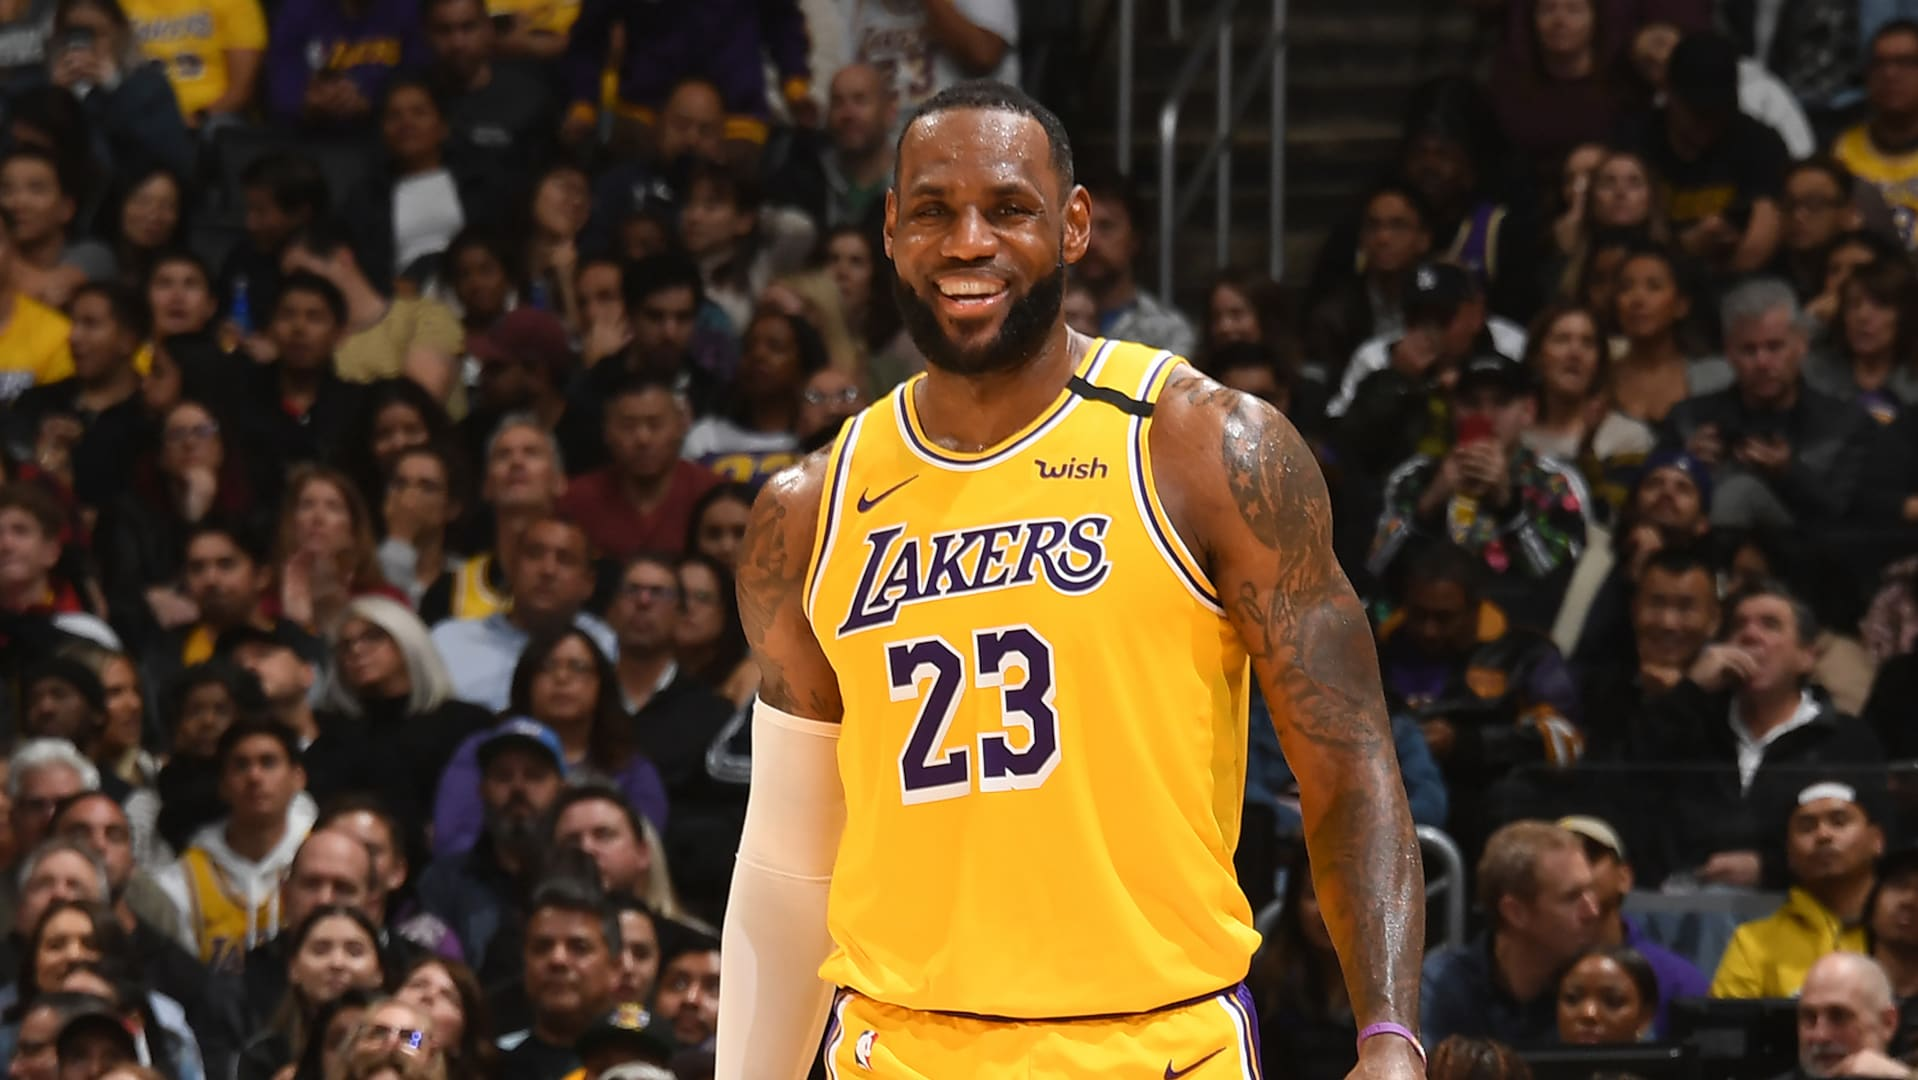 LeBron James and L.A. Lakers remain atop NBA's most popular jersey and team merchandise lists